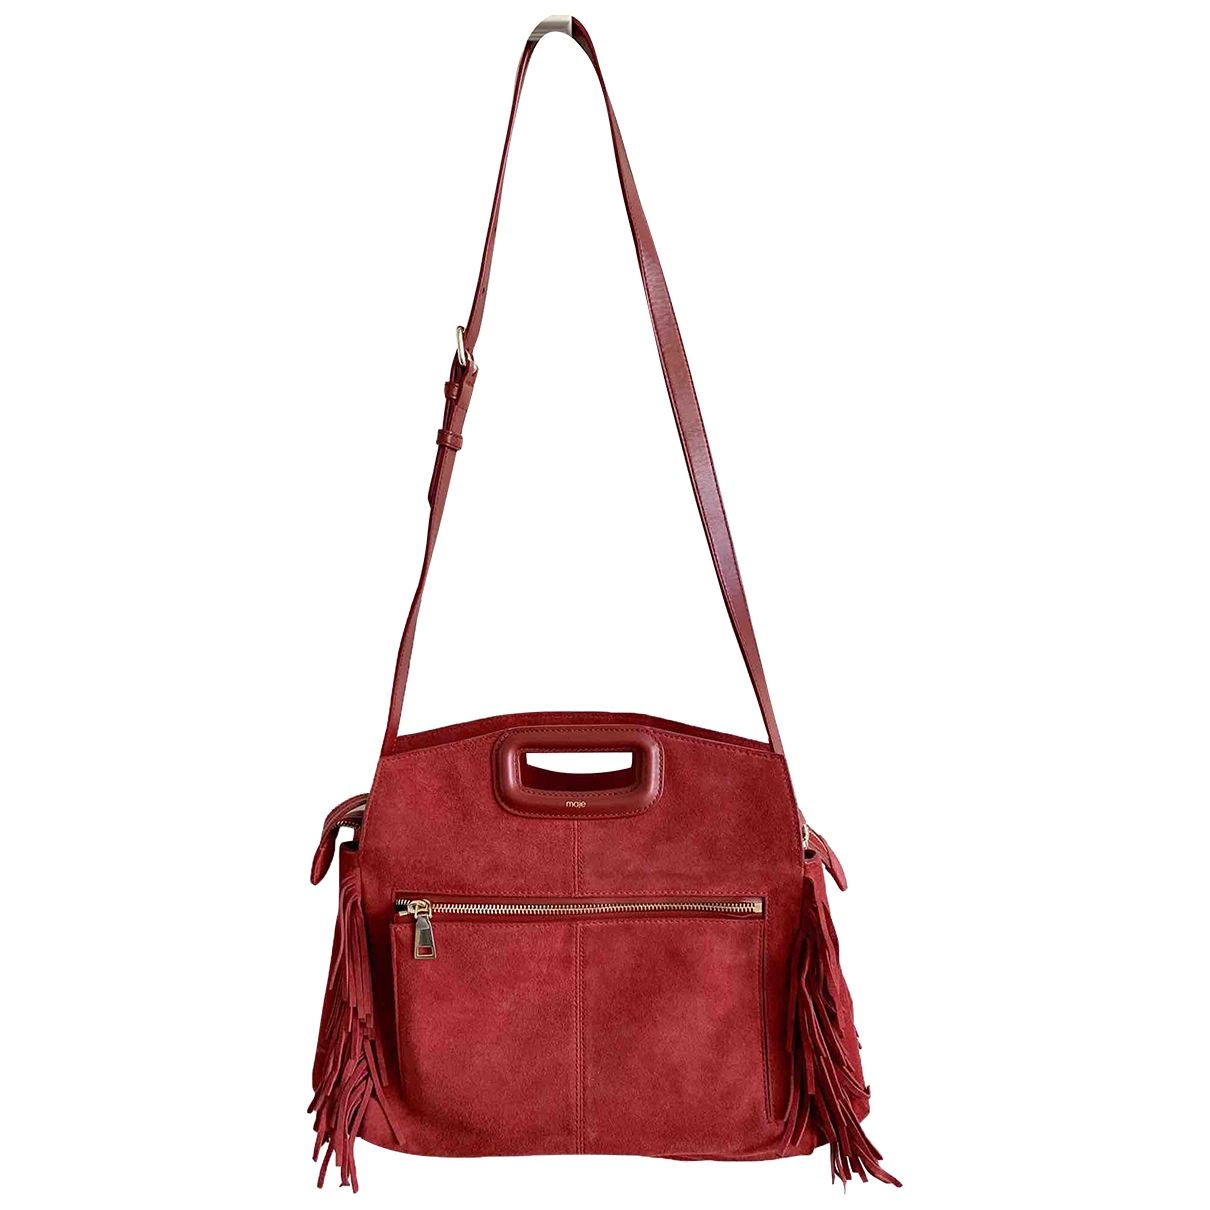 Maje Sac M Red Suede handbag for Women \N